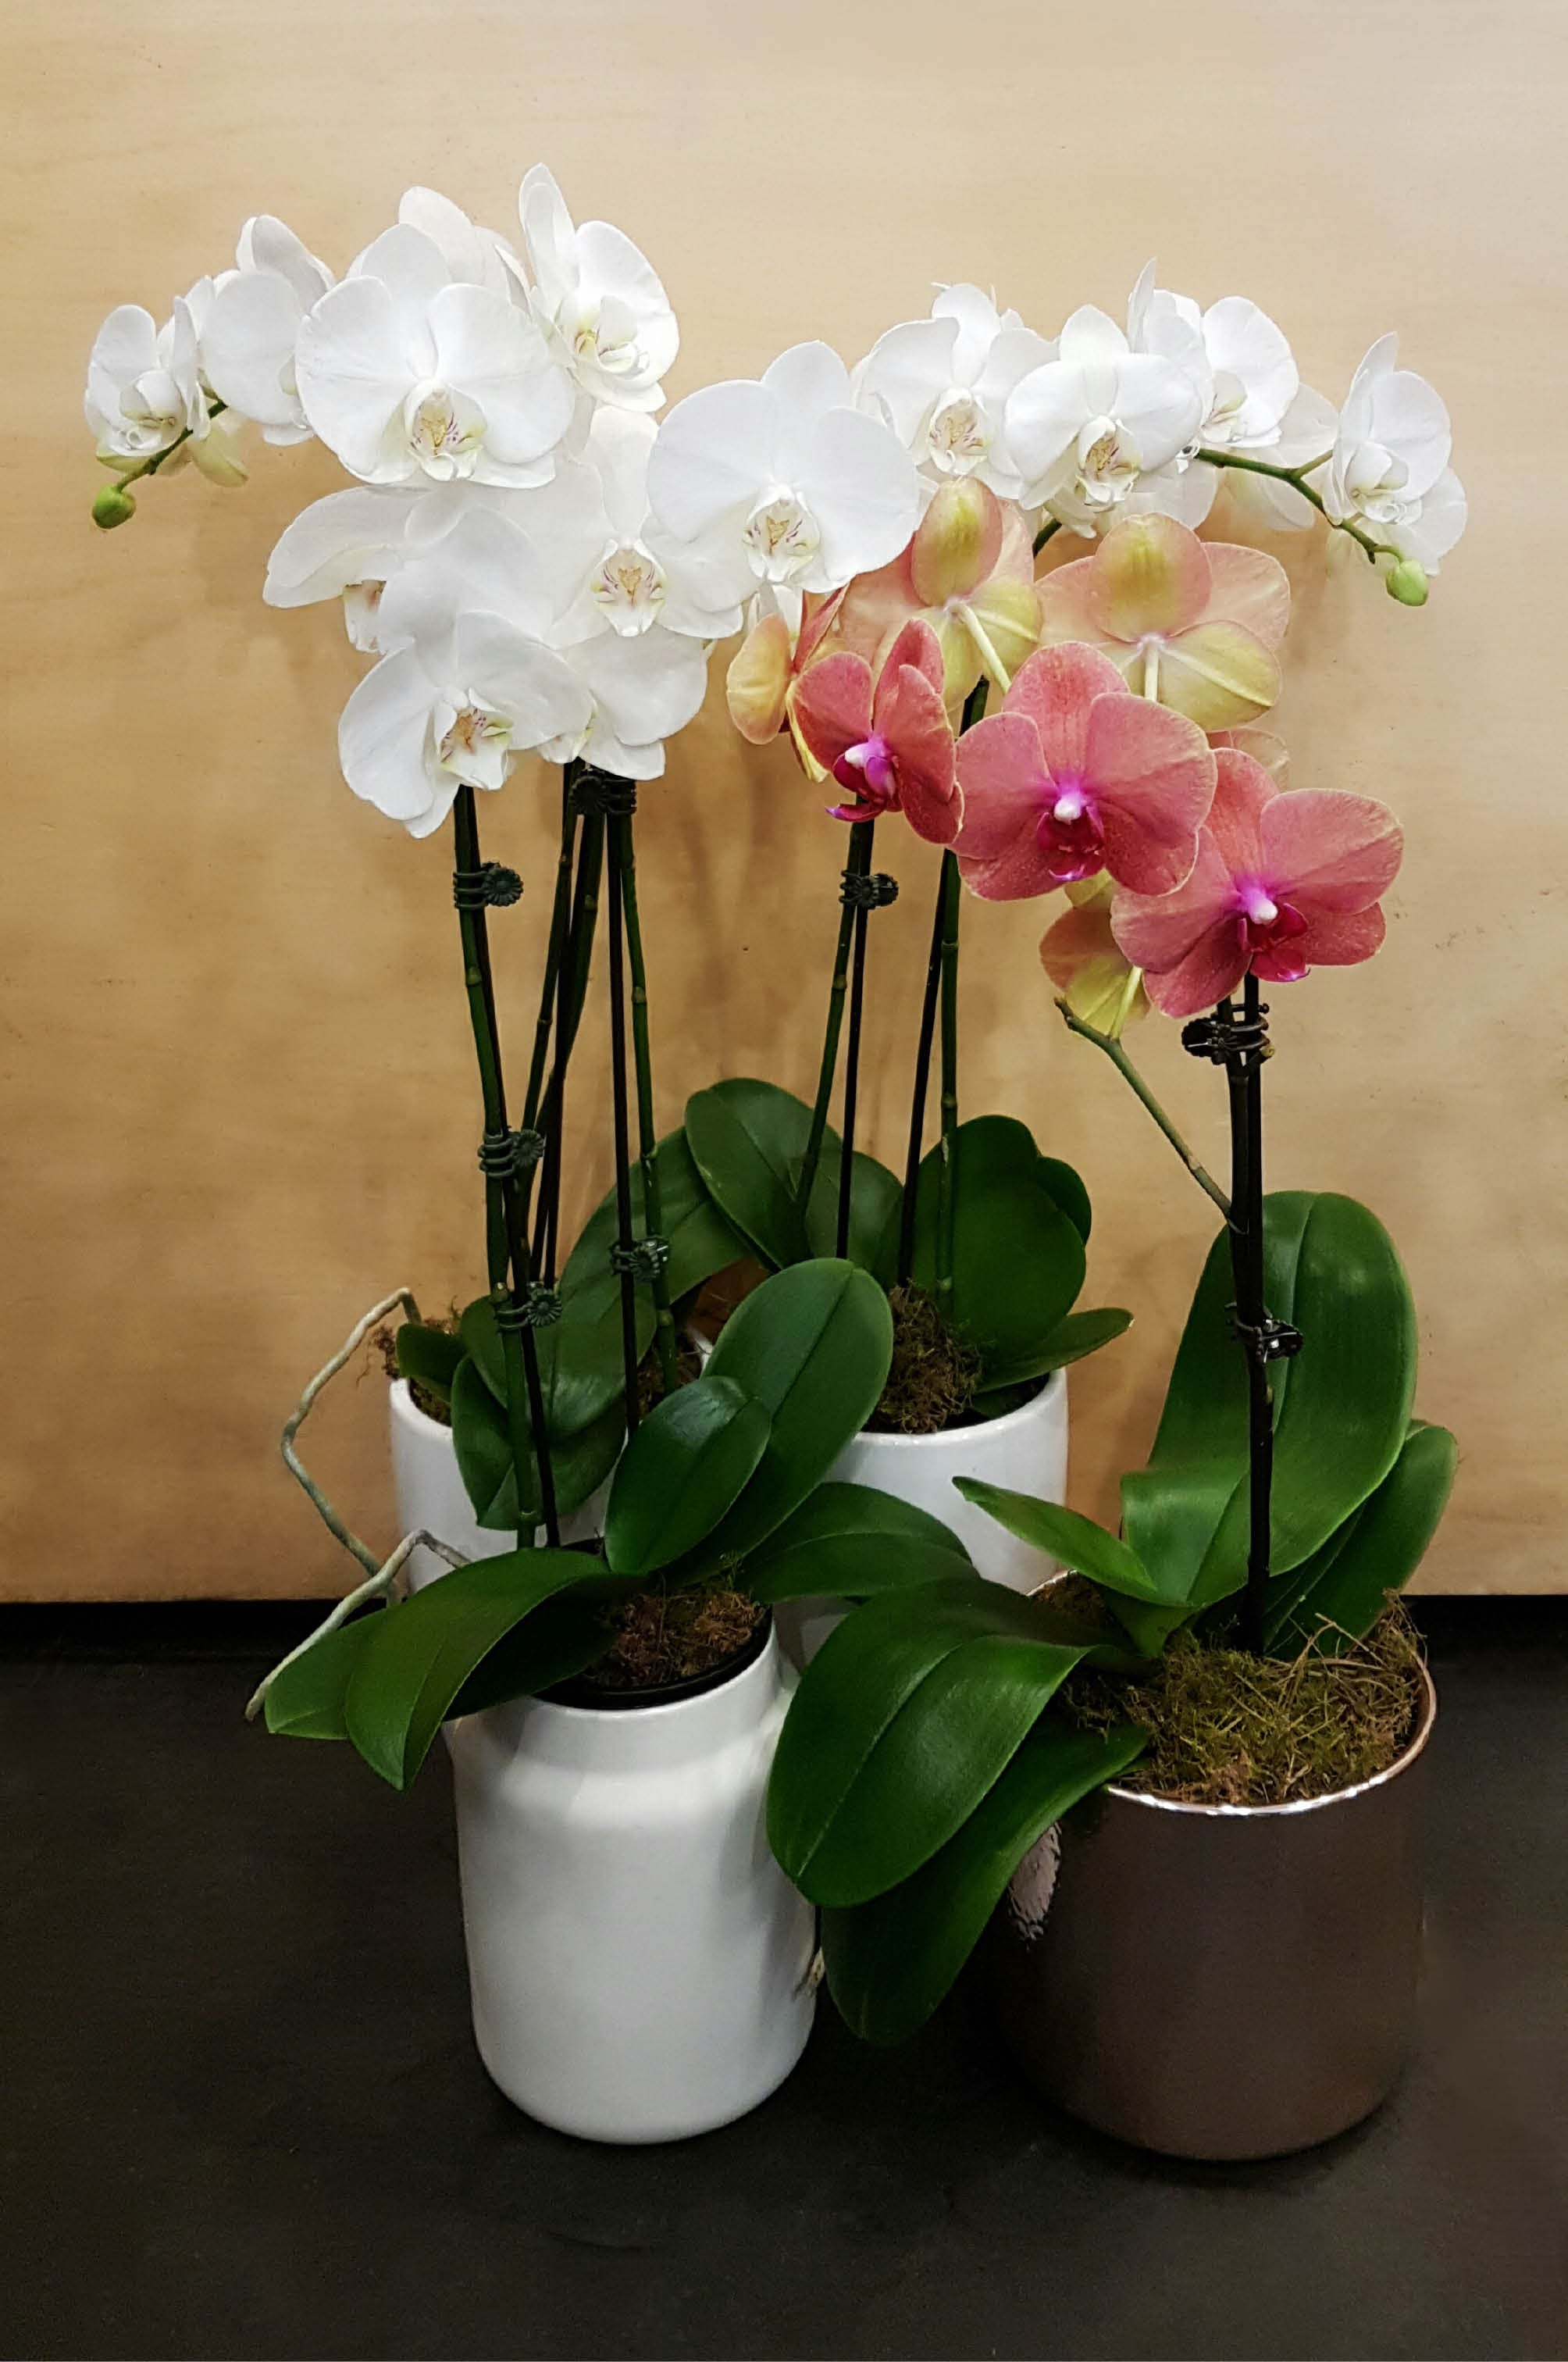 Phalaenopsis Orchid Plant Poetry In Flowers